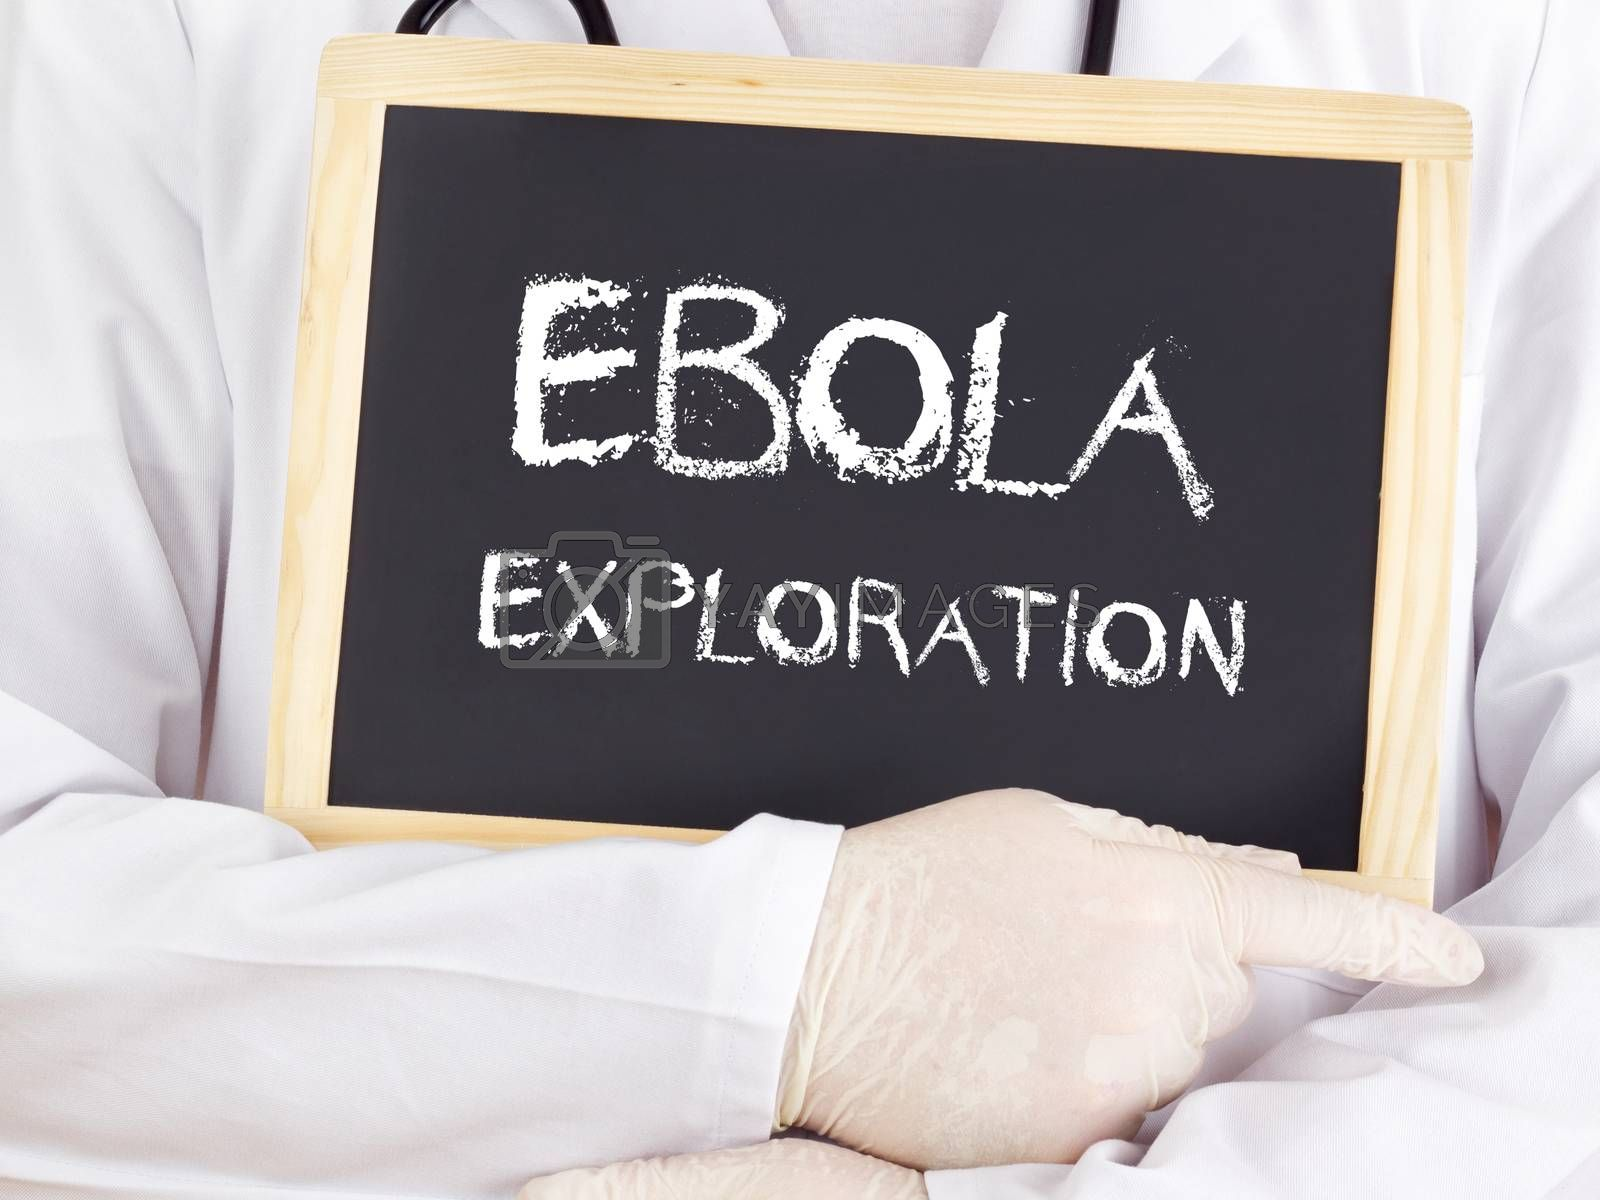 Doctor shows information: Ebola exploration